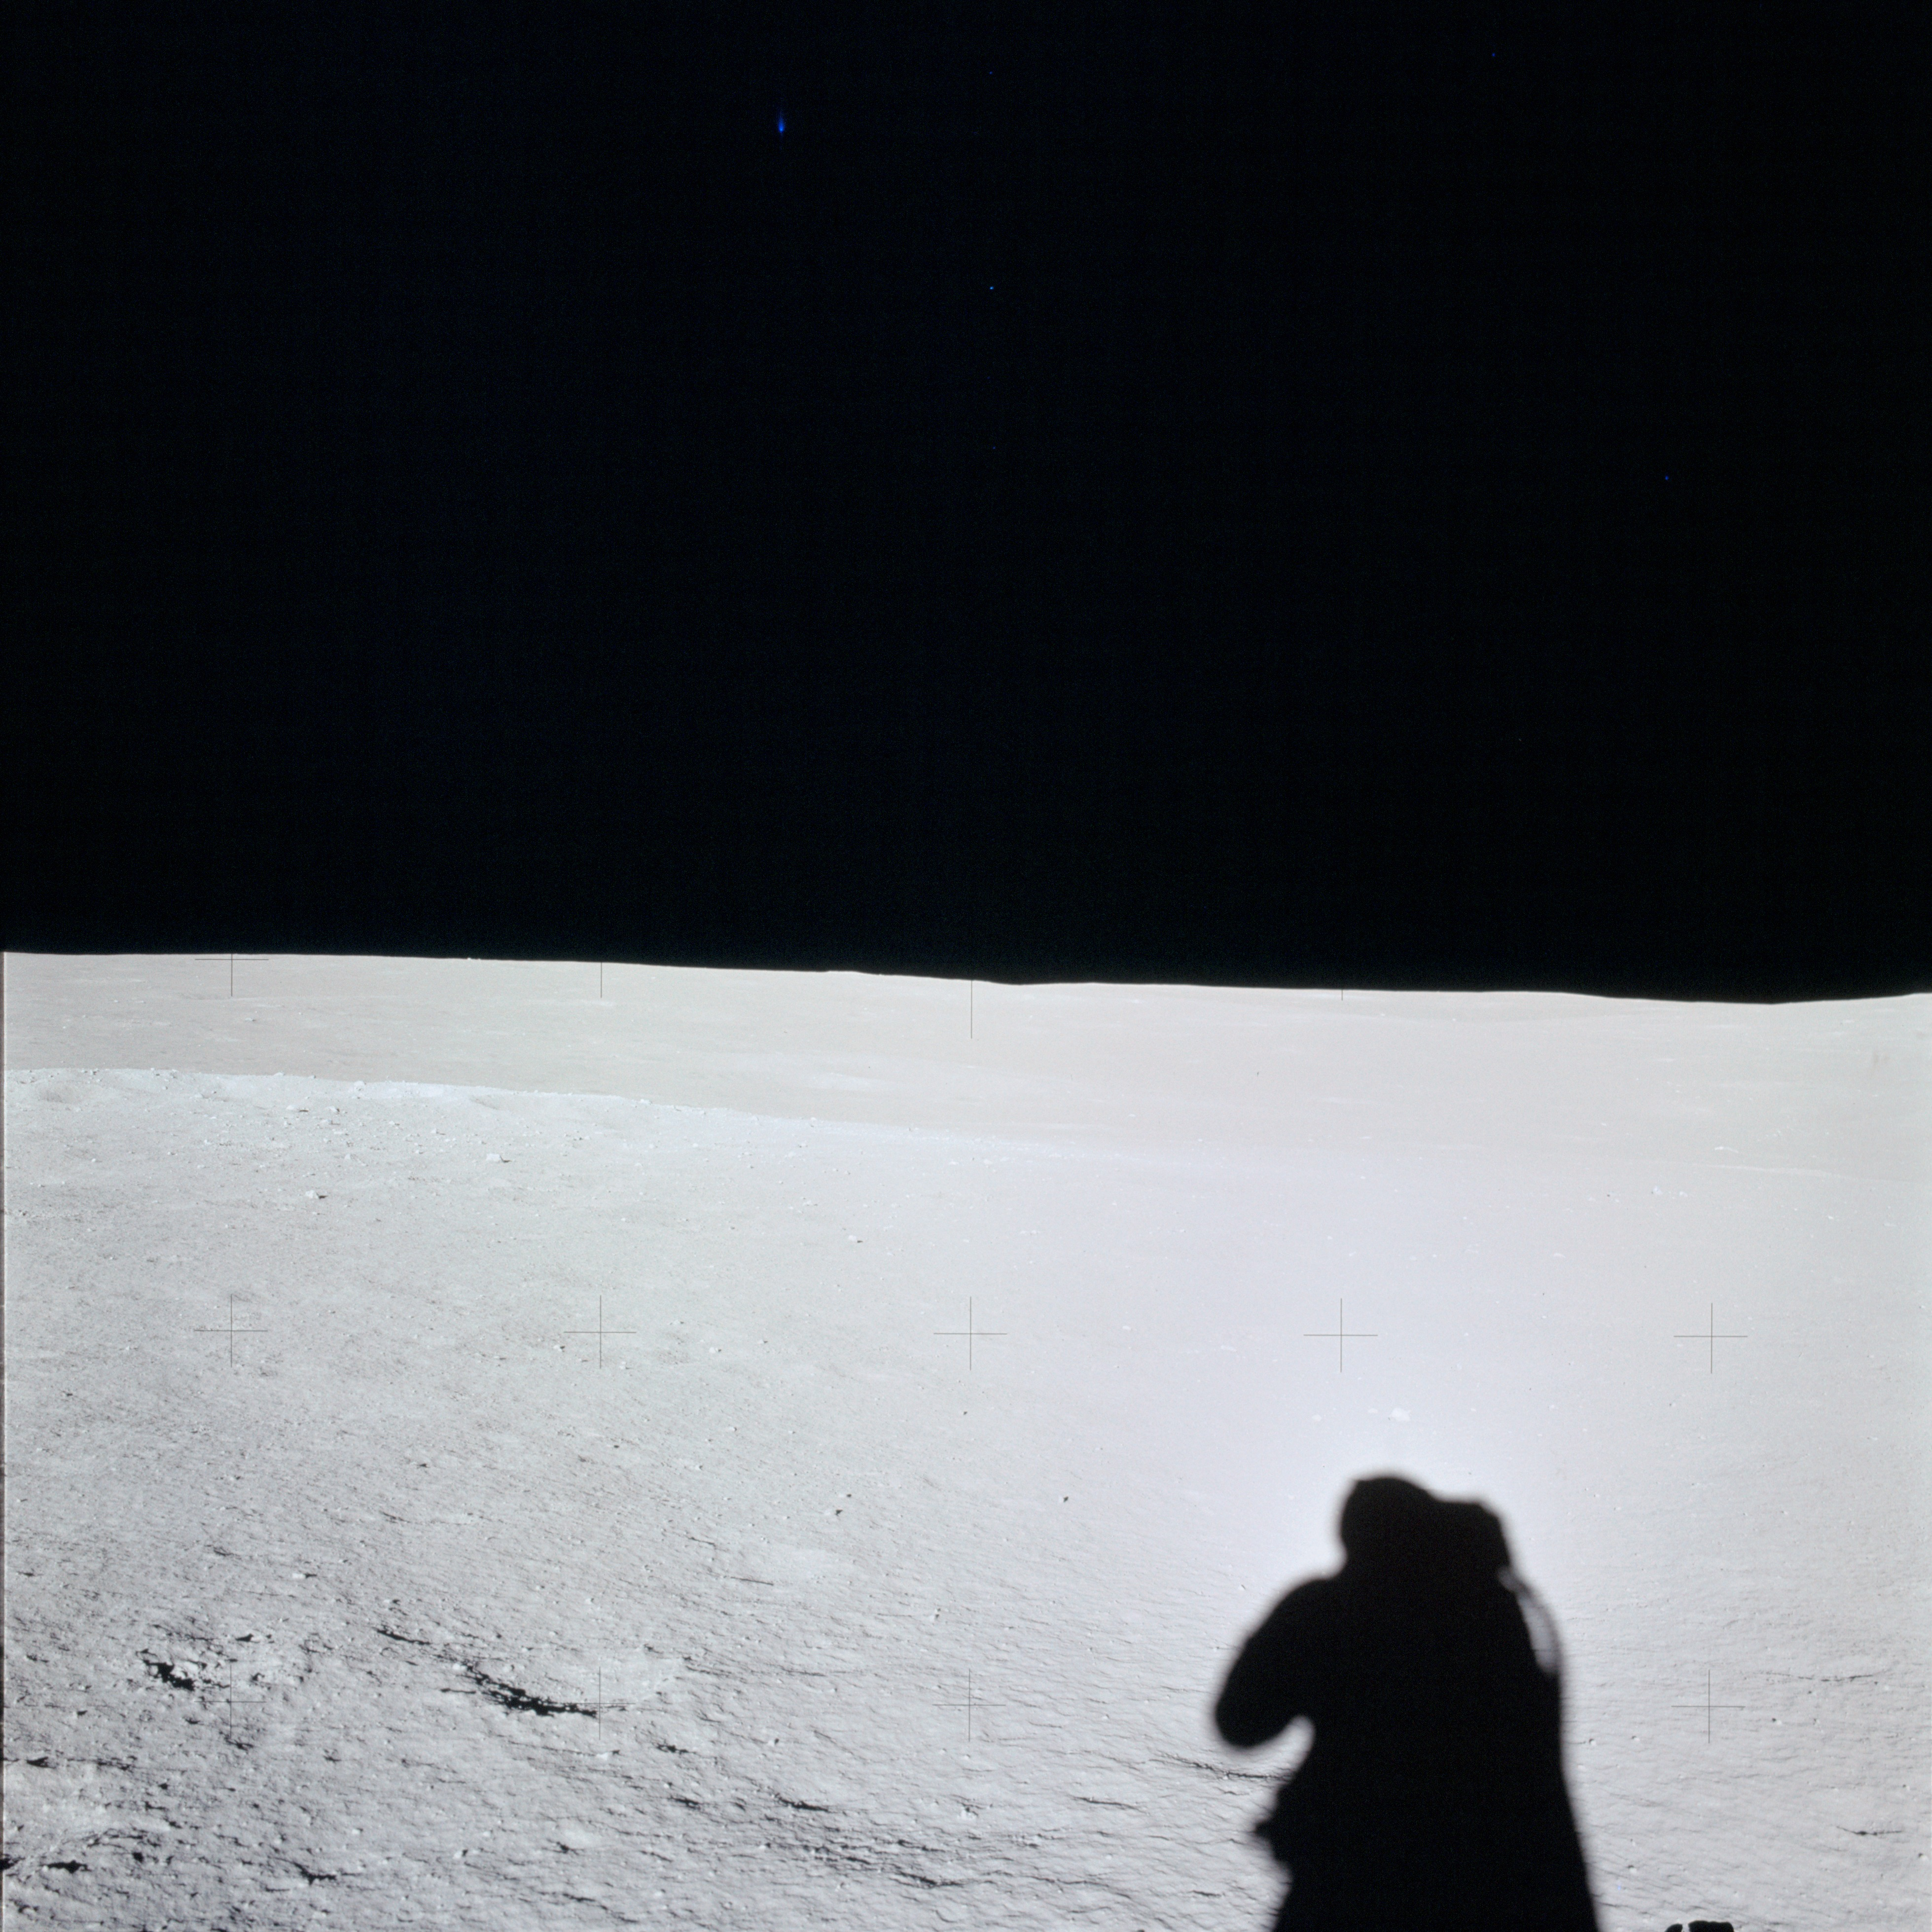 Apollo 14 Mission image - View of the Lunar Surface towards the western Horizon.